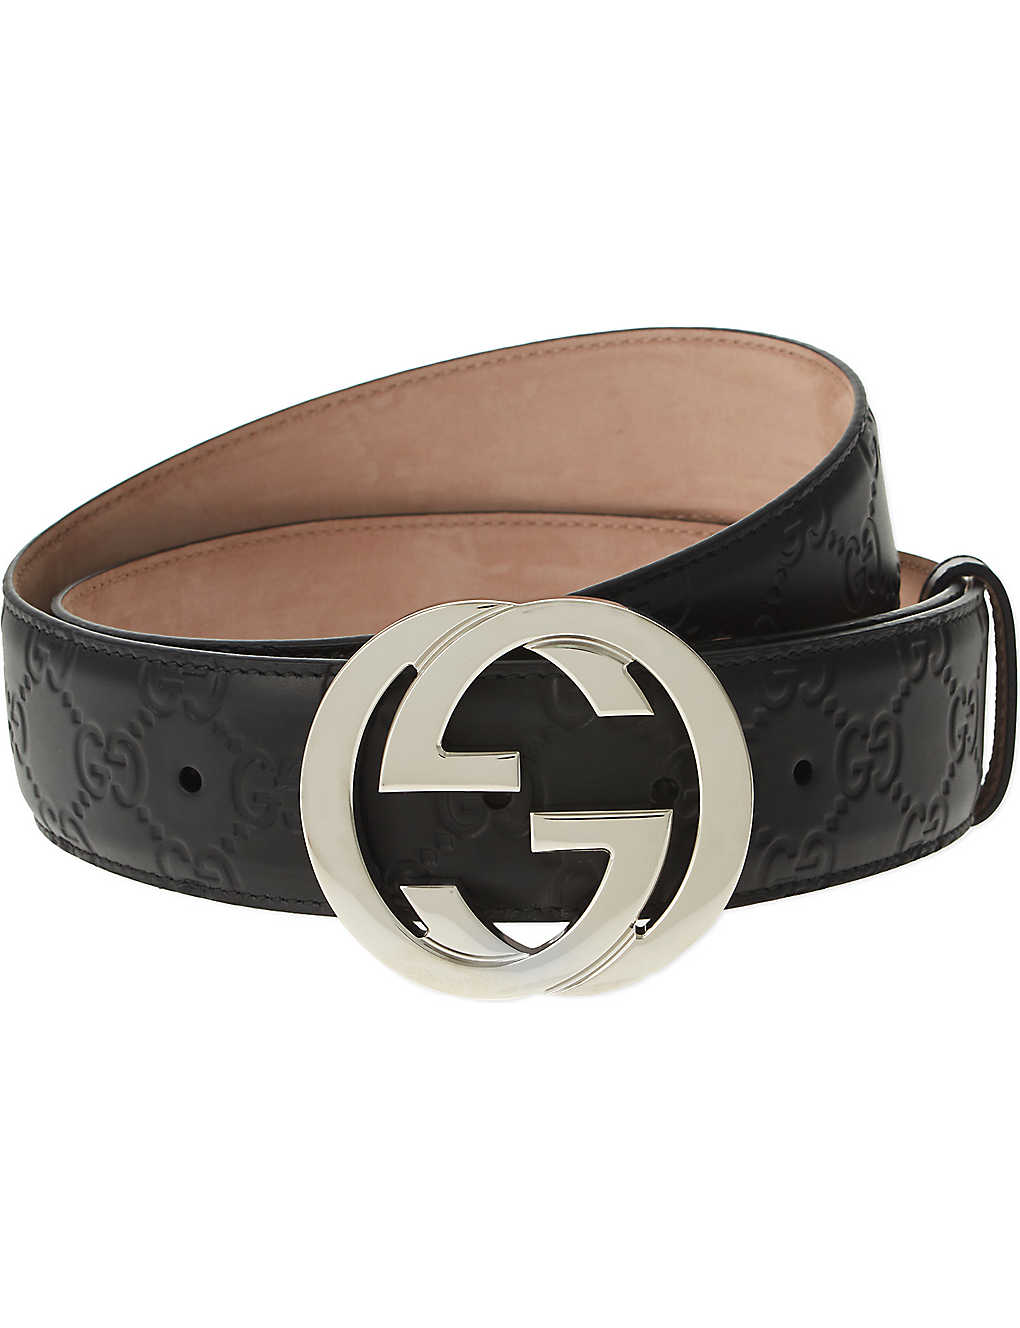 53d55bbea8a8c8 GUCCI - Leather logo belt | Selfridges.com